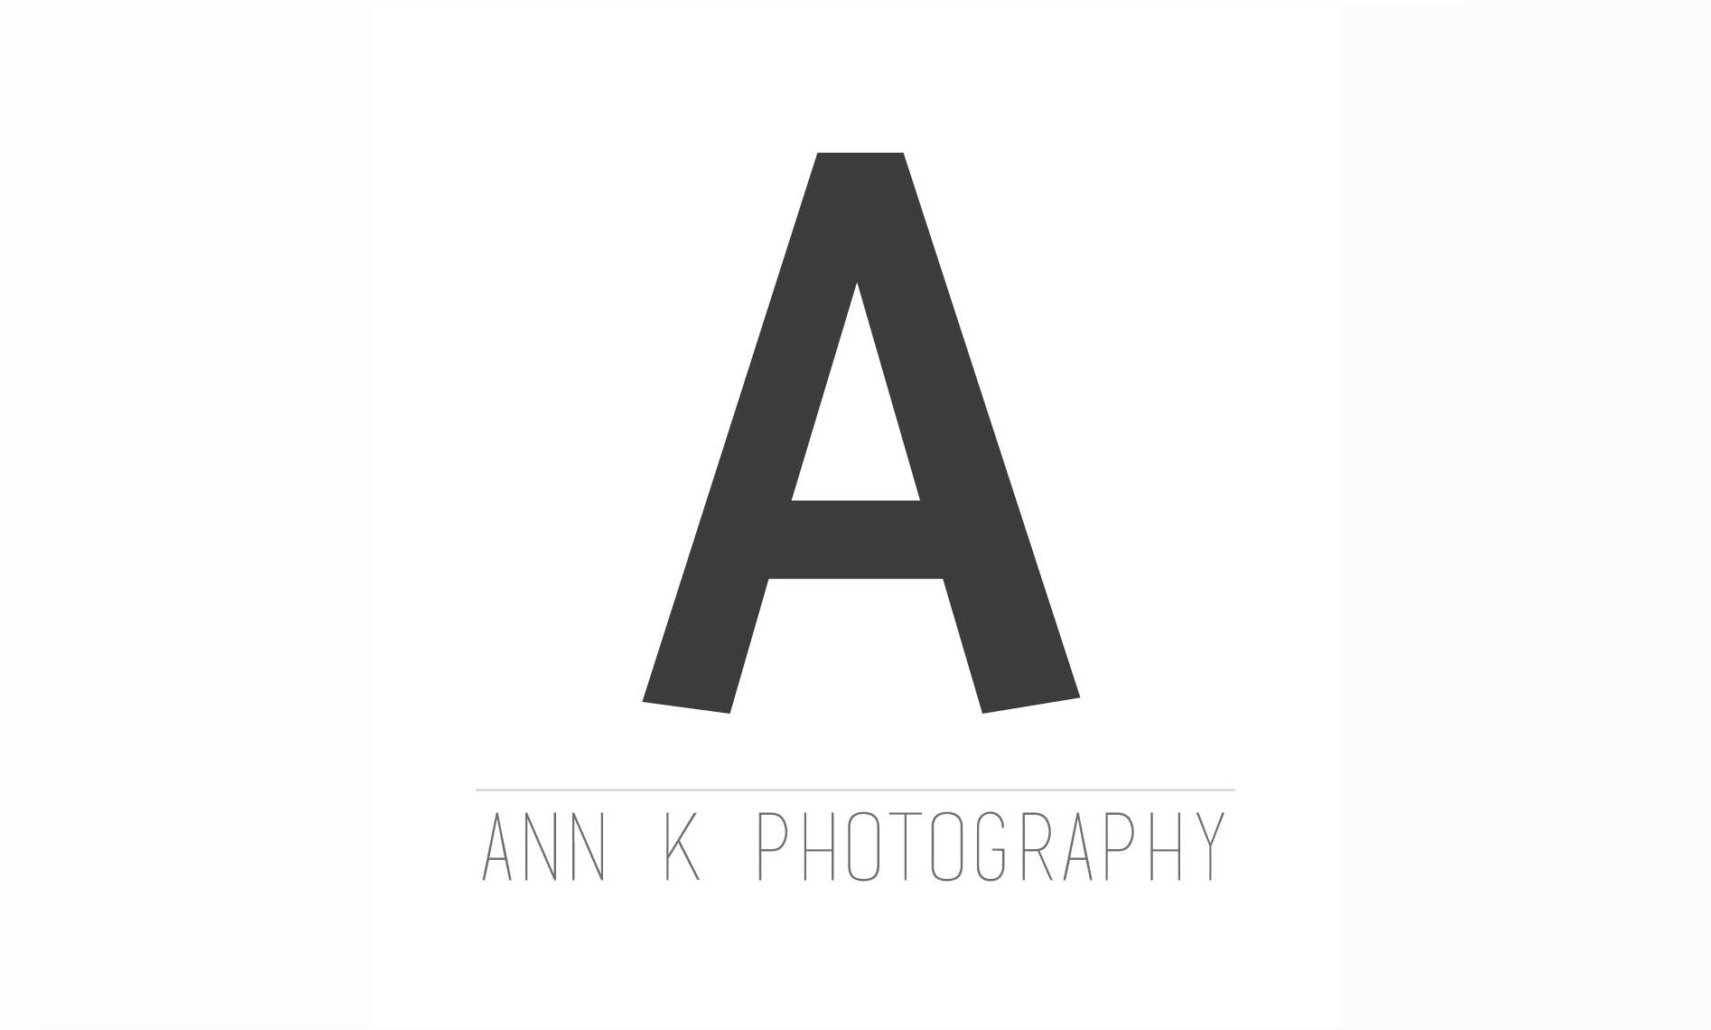 Ann K Photography